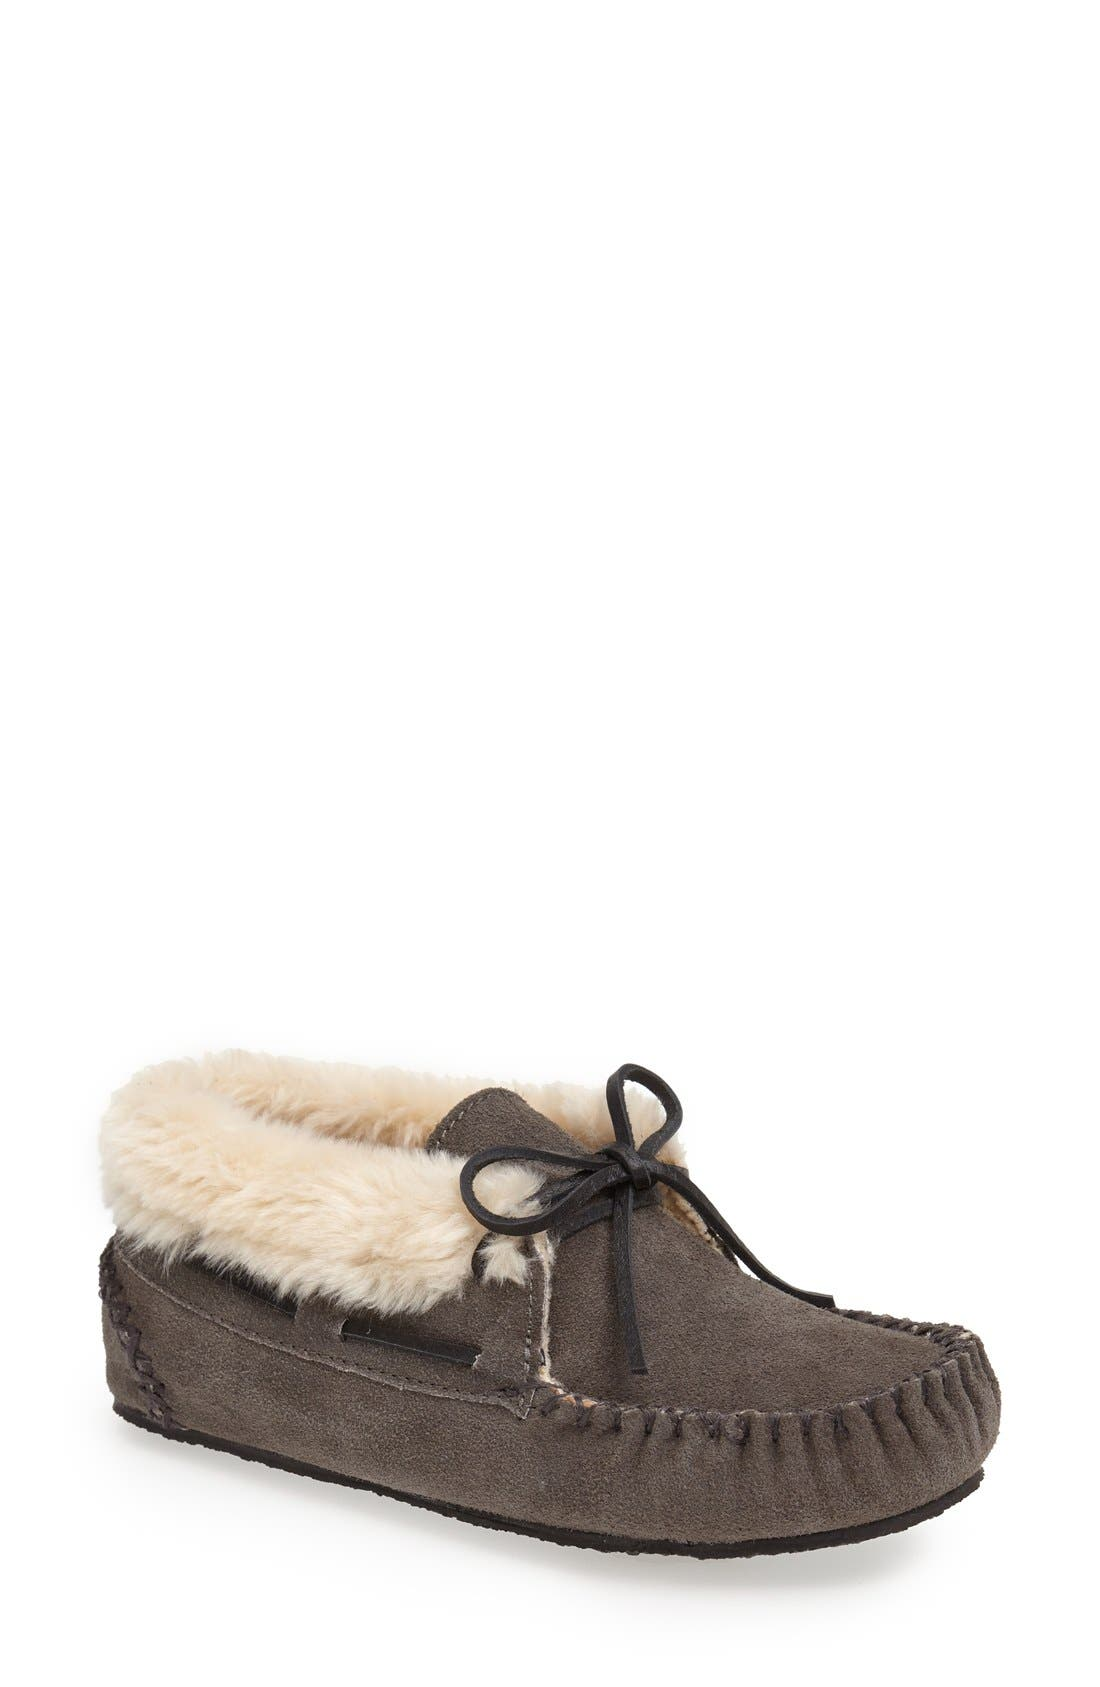 Main Image - Minnetonka 'Chrissy' Slipper Bootie (Women)